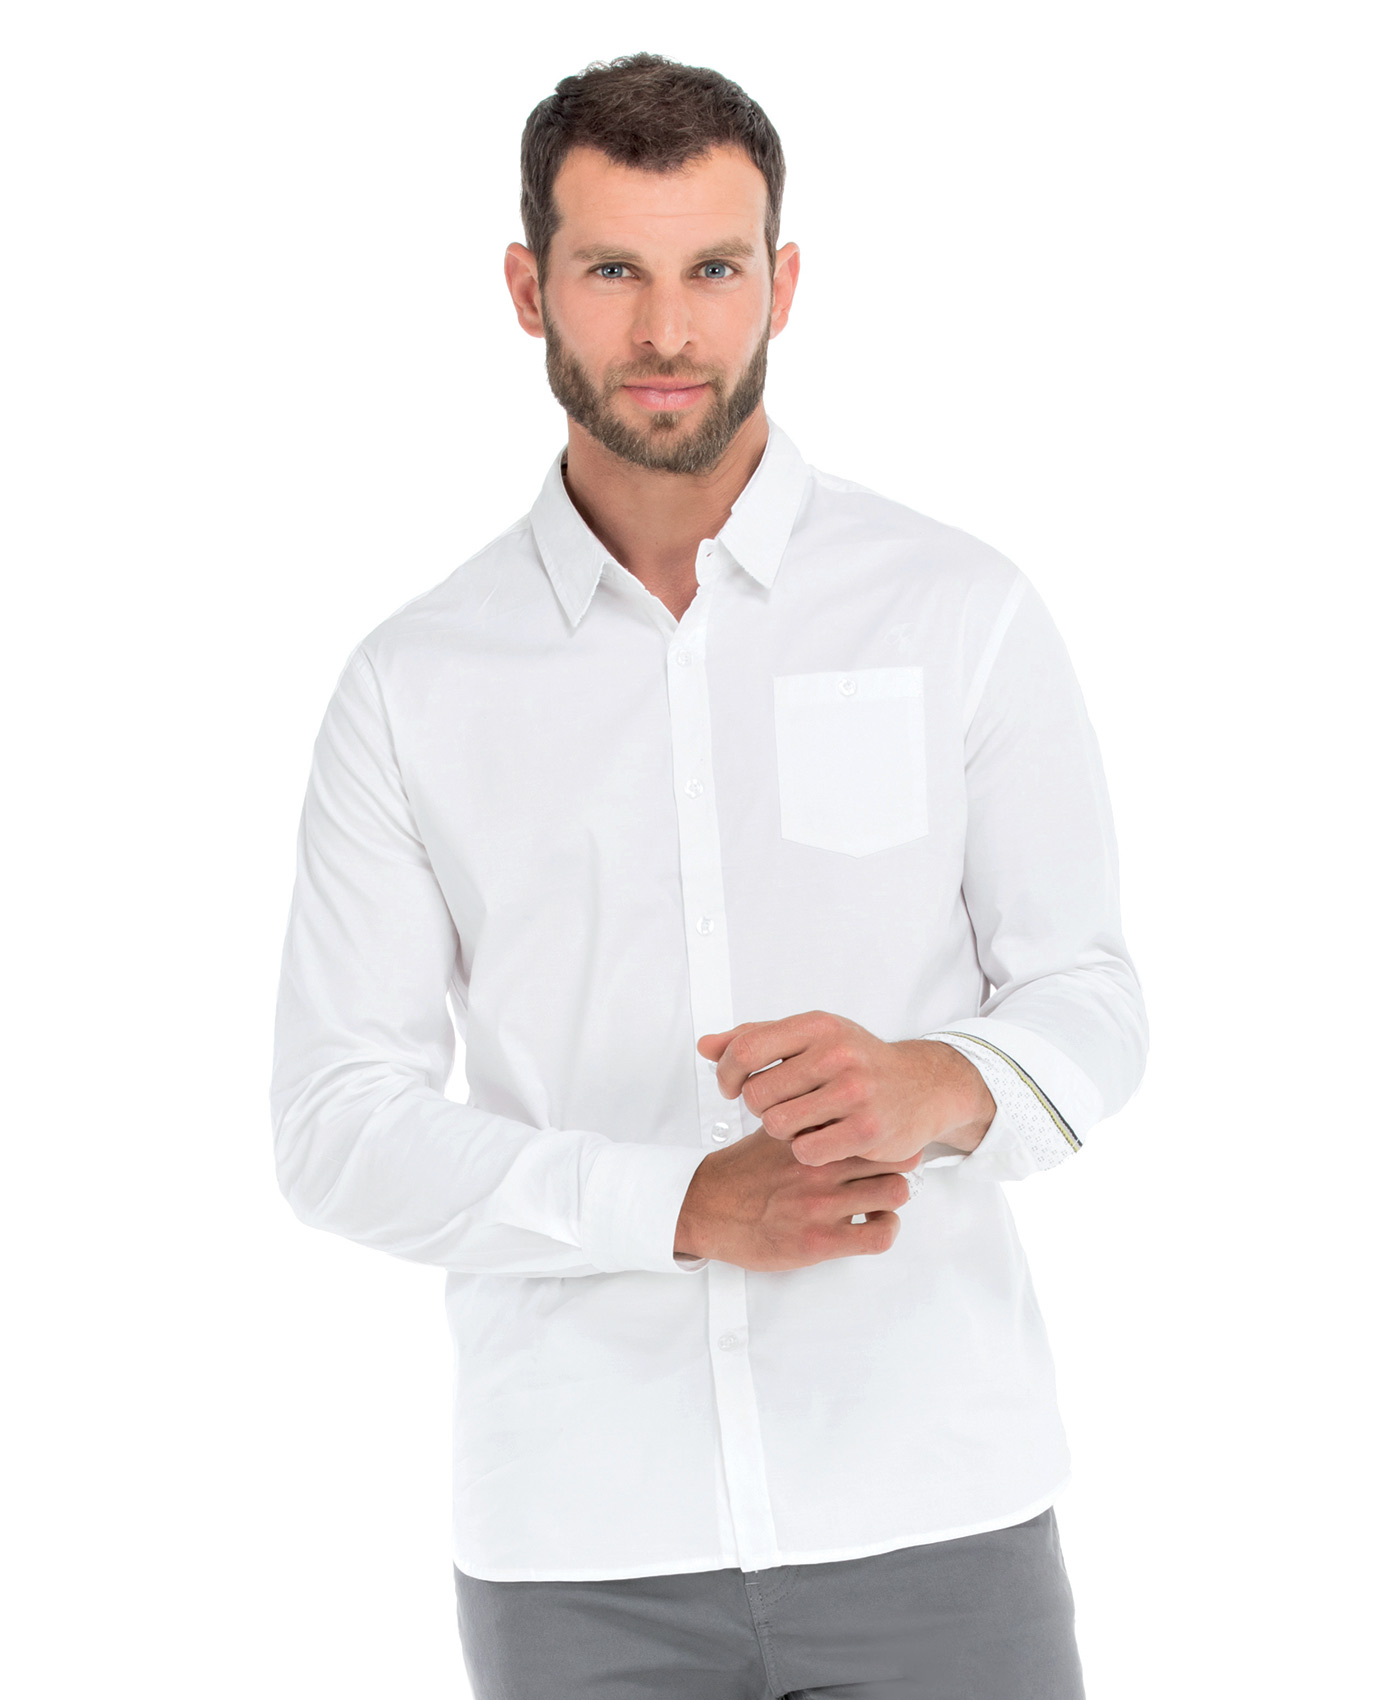 Chemise blanche homme - Mode marine Promotions